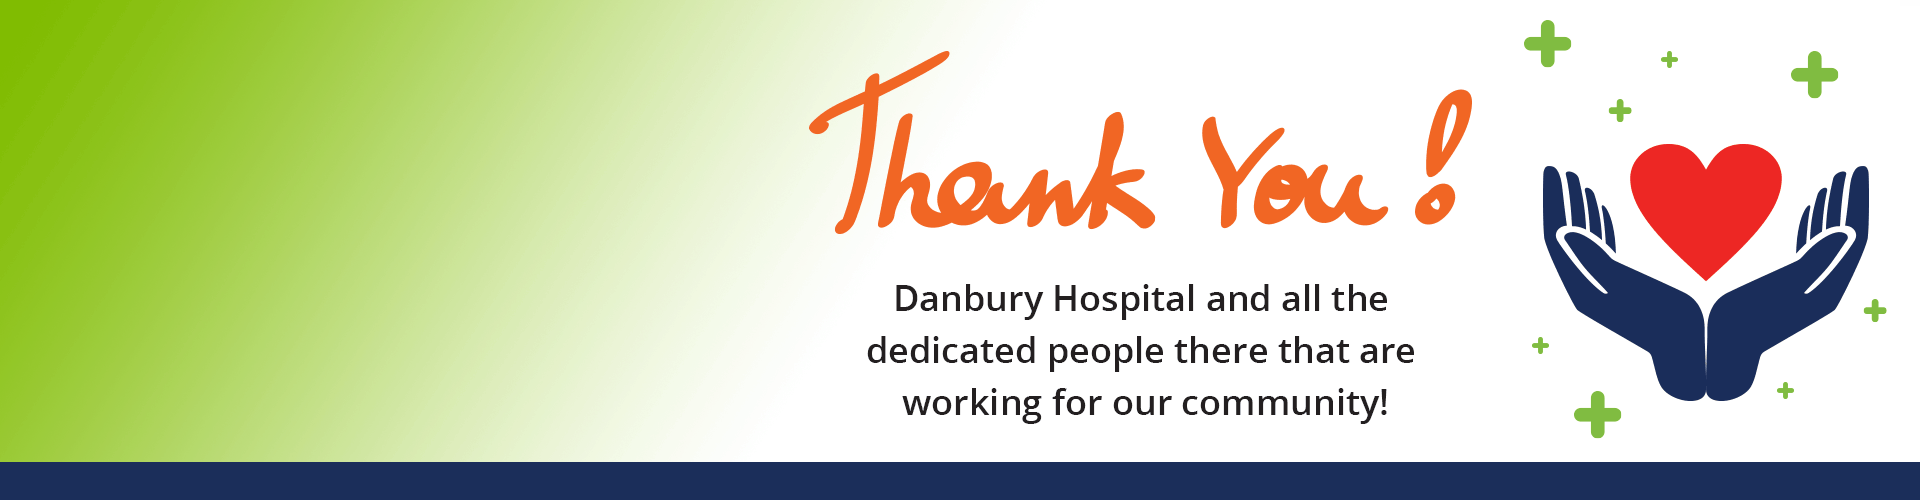 Thank You - Danbury Hospital